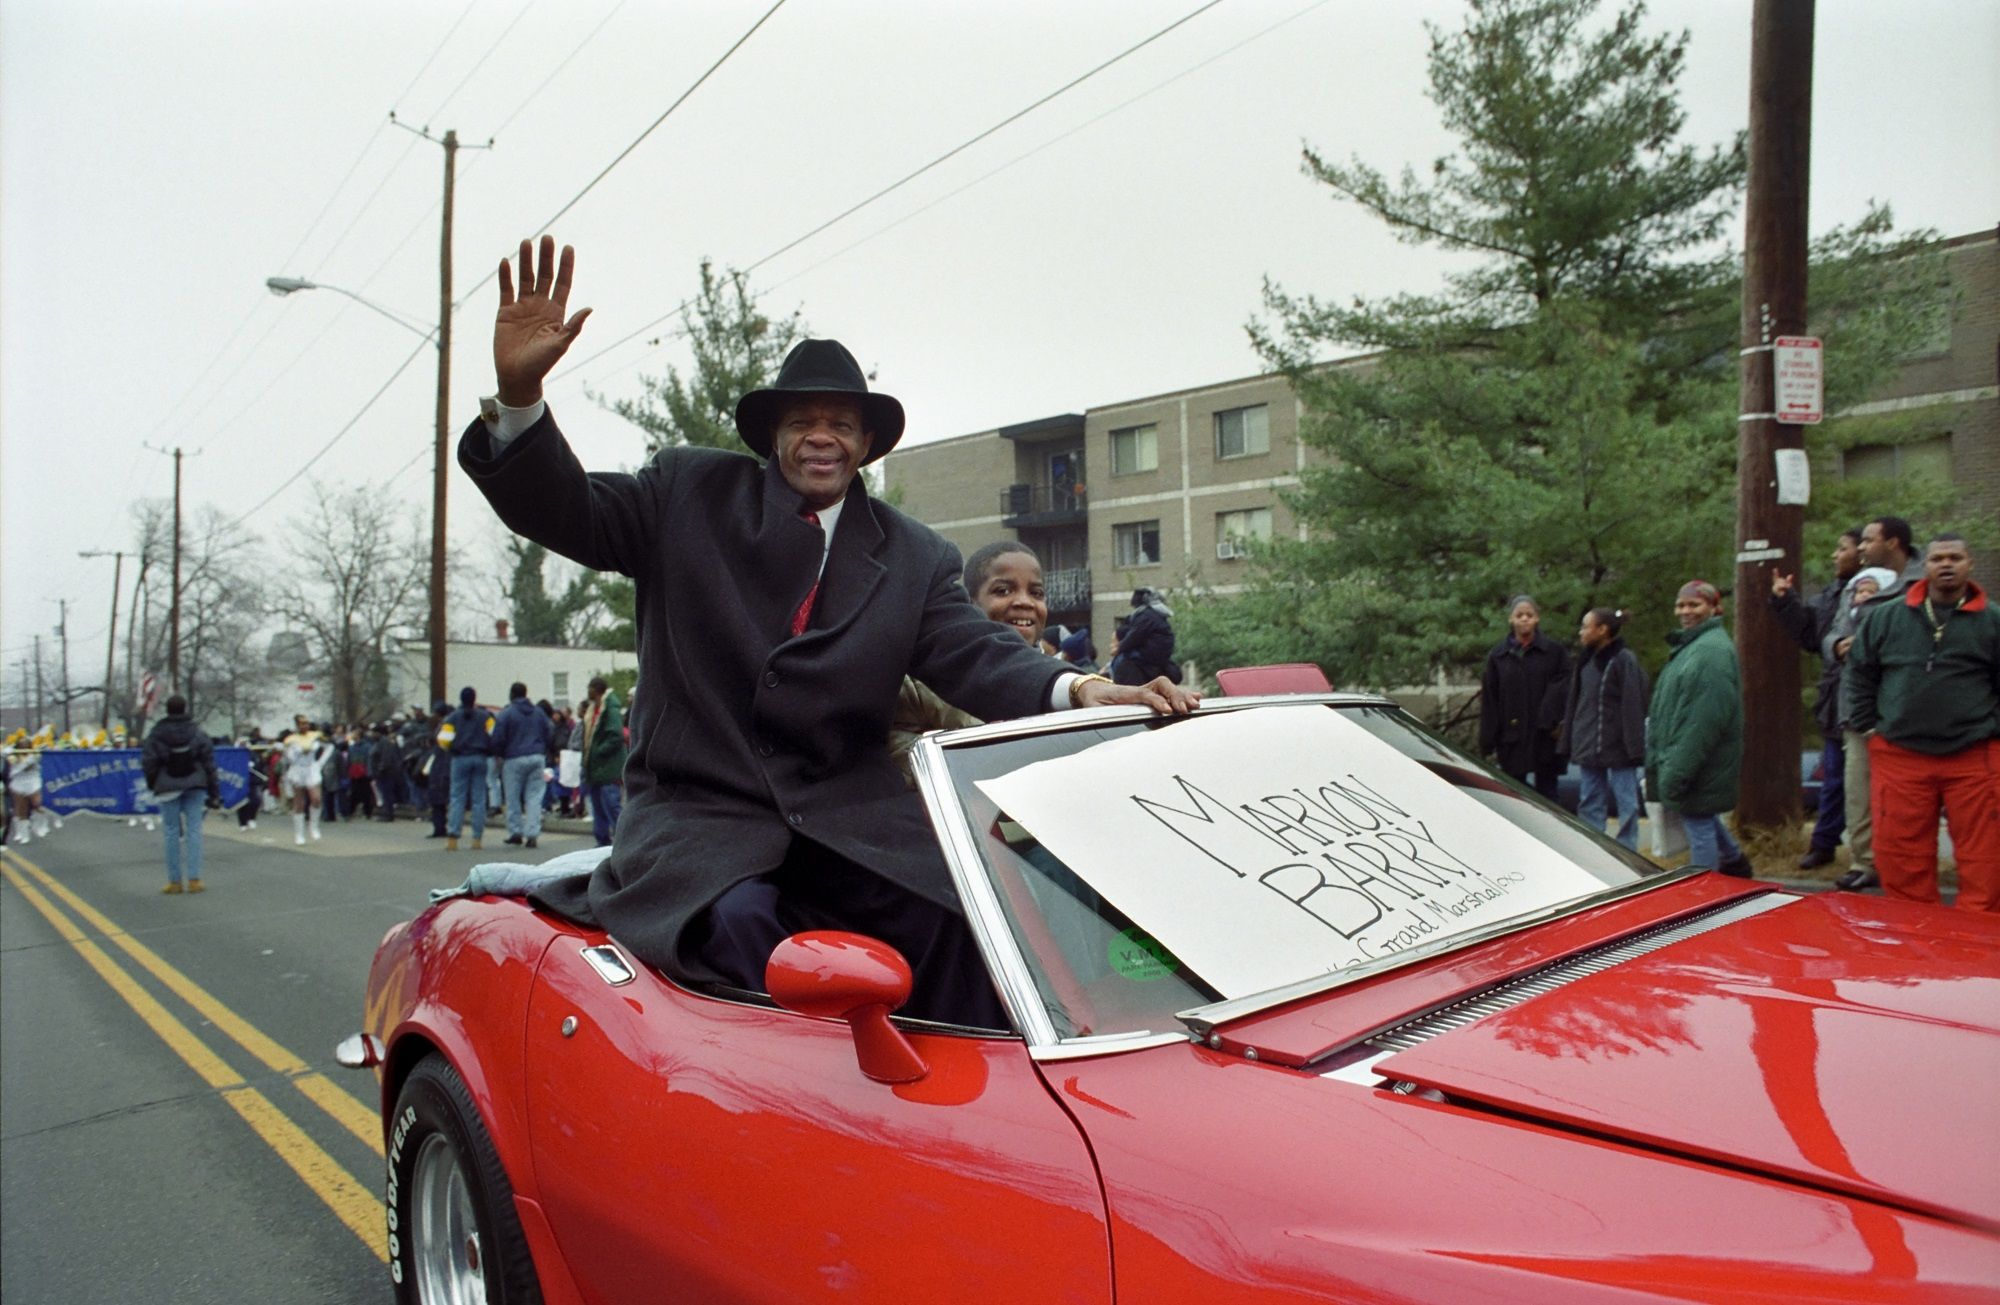 5. Marion Barry